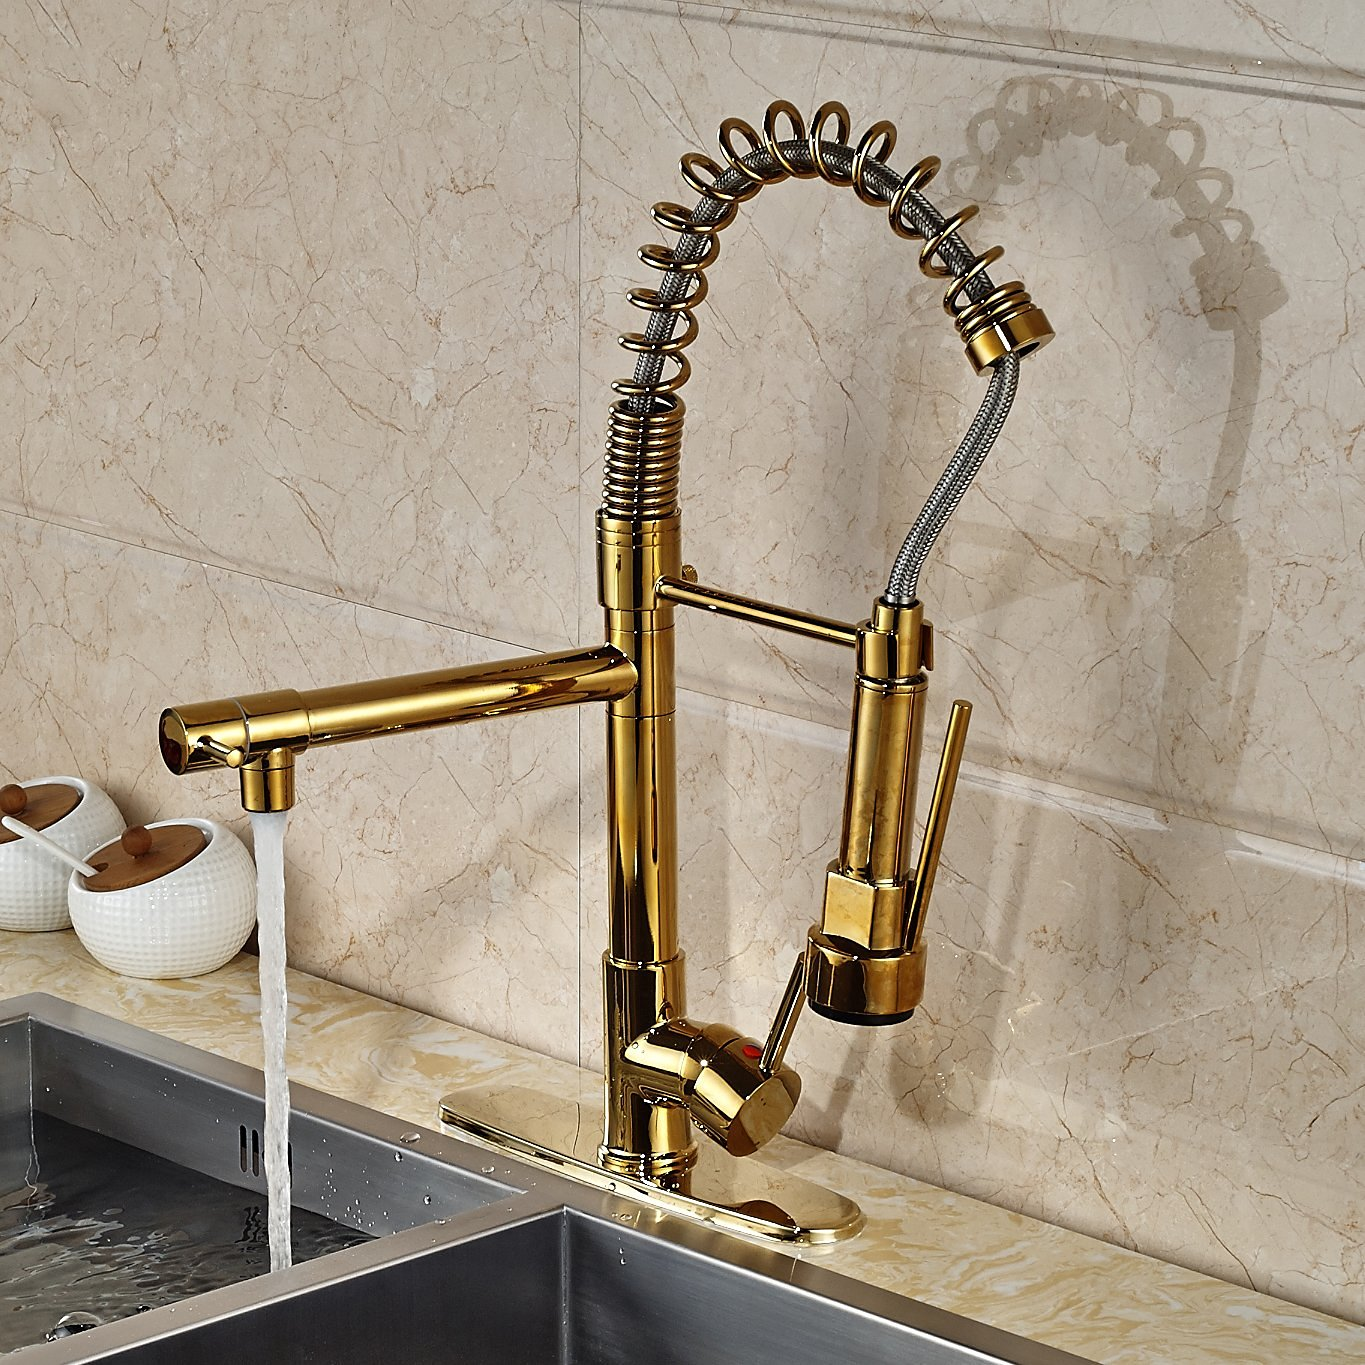 kitchen sink faucets aid dishwasher reviews venezuela gold finish faucet with pull down any modern would greatly benefit from a sophisticated like our model the gives it an elegant look